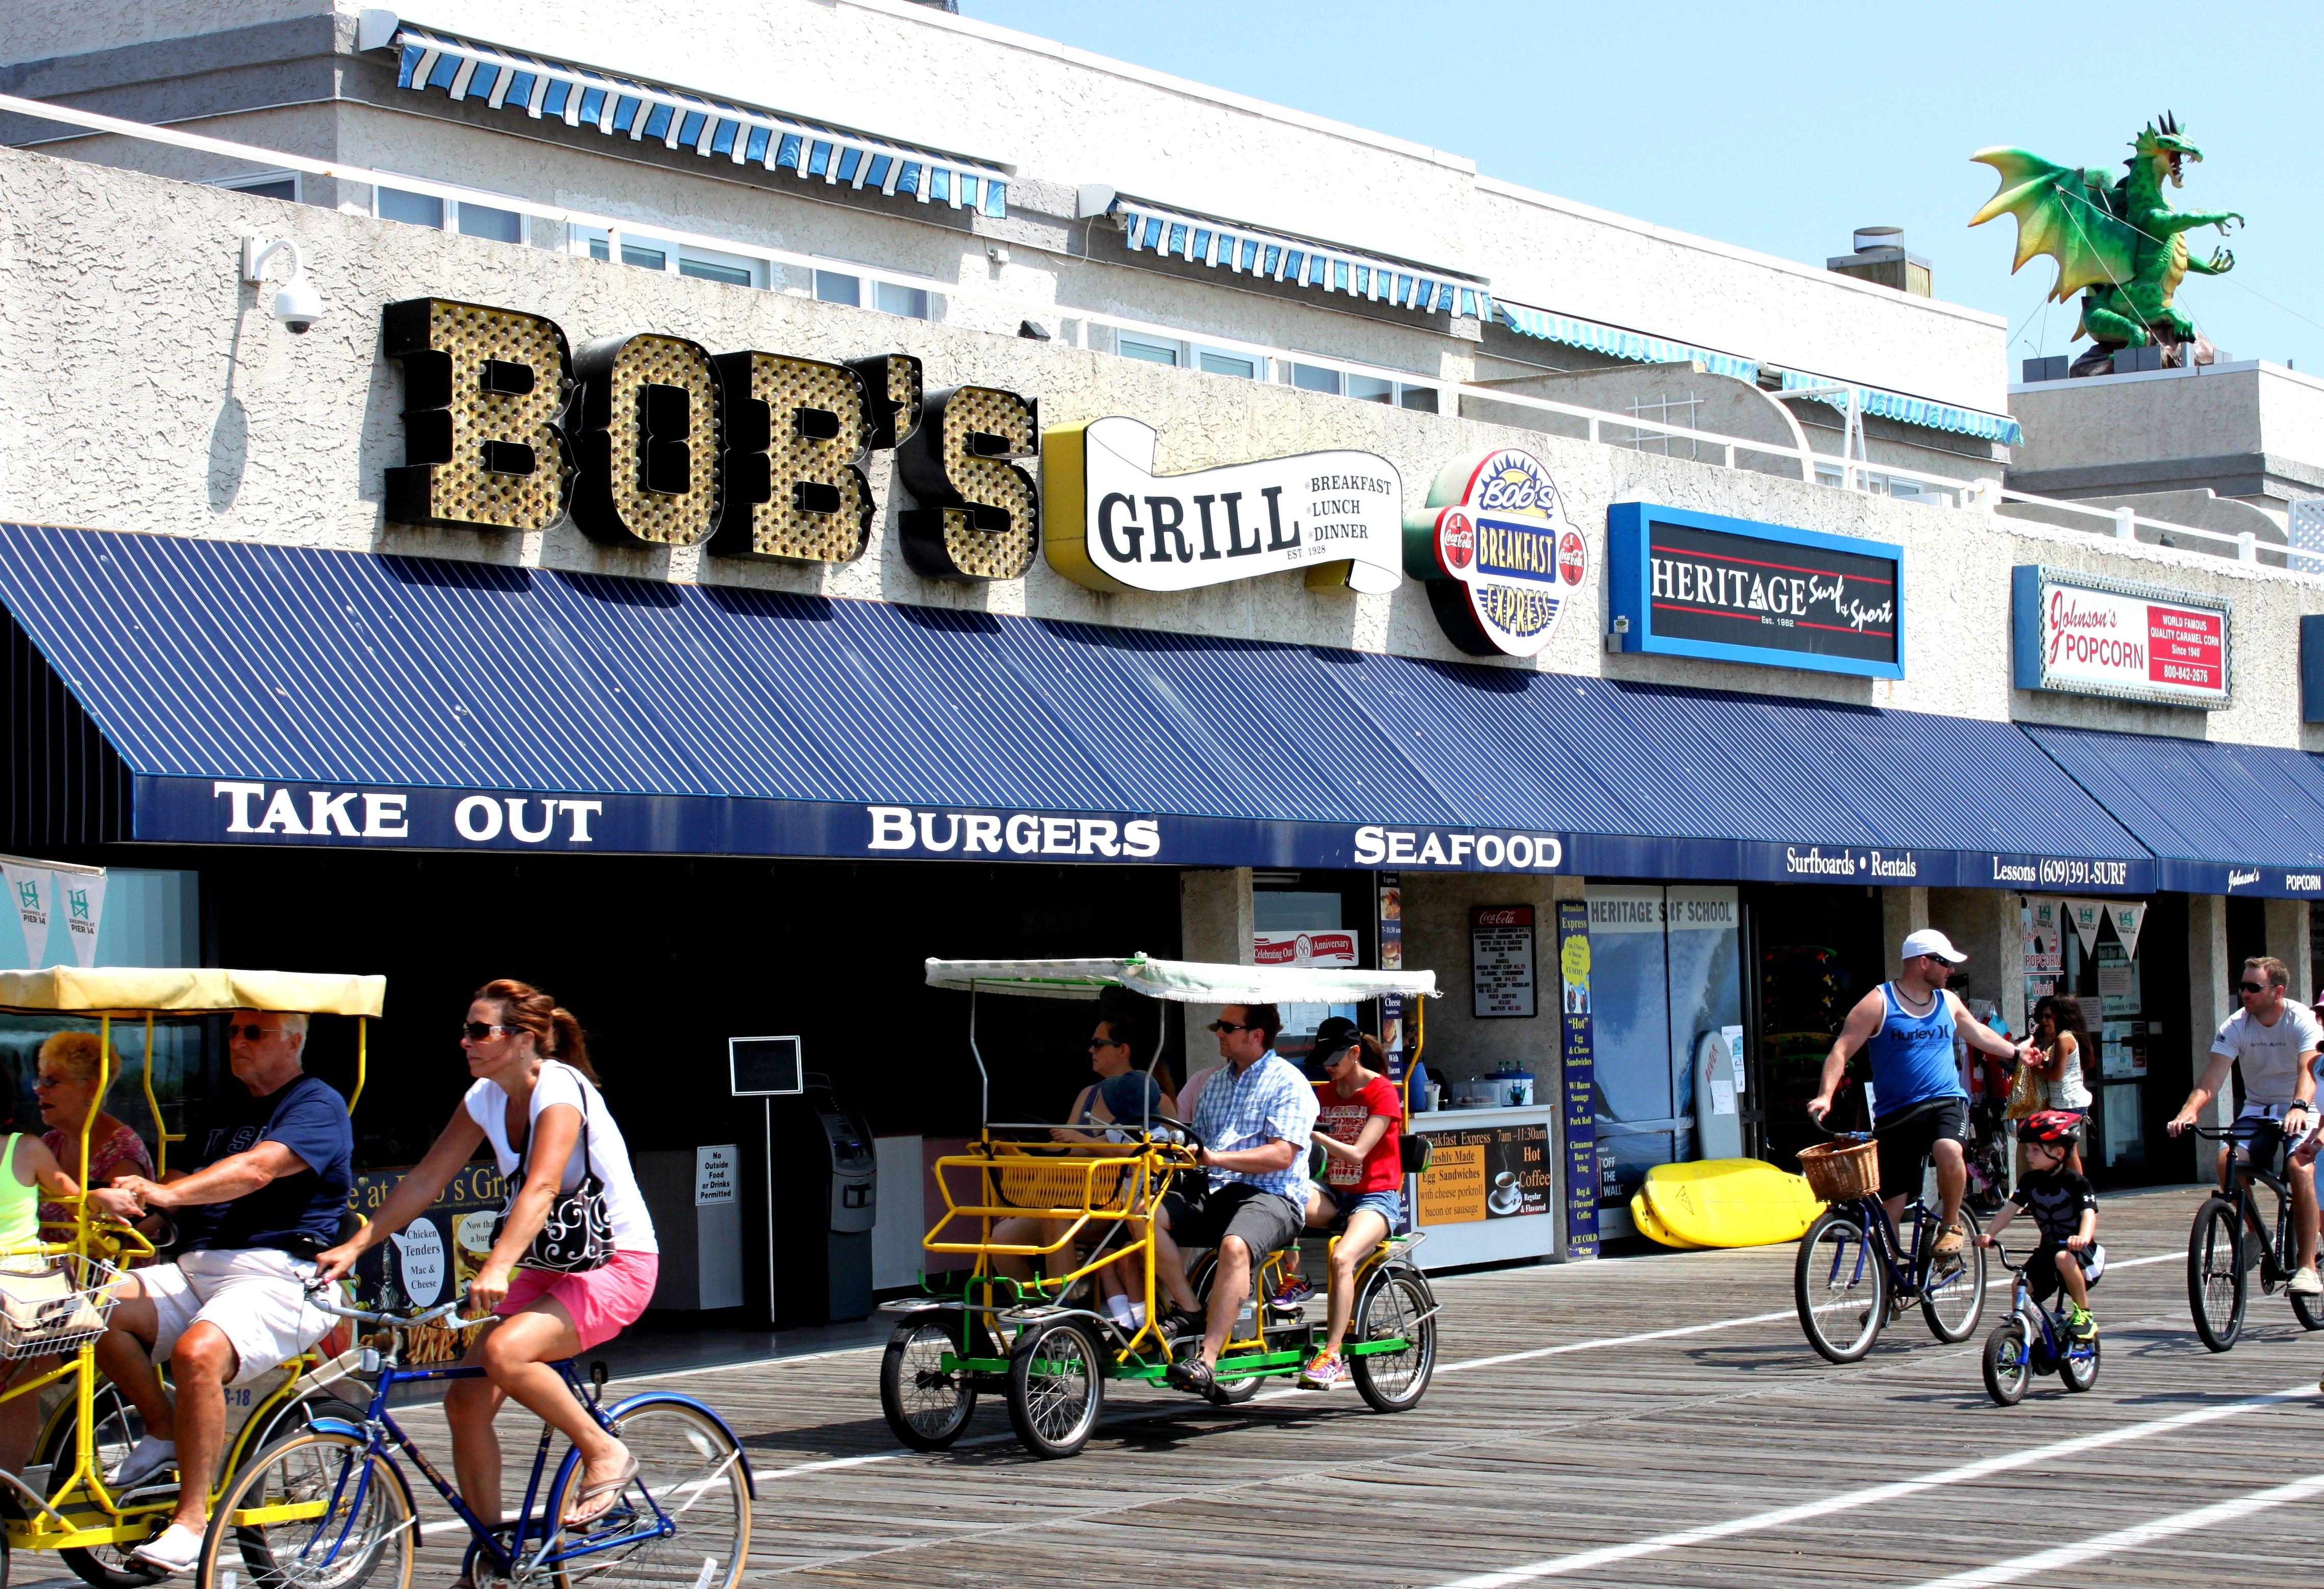 It S Never A Bad Day For The Boardwalk When You Have An Awning To Hide From The Weather Take Out Burger Jersey Shore Awning